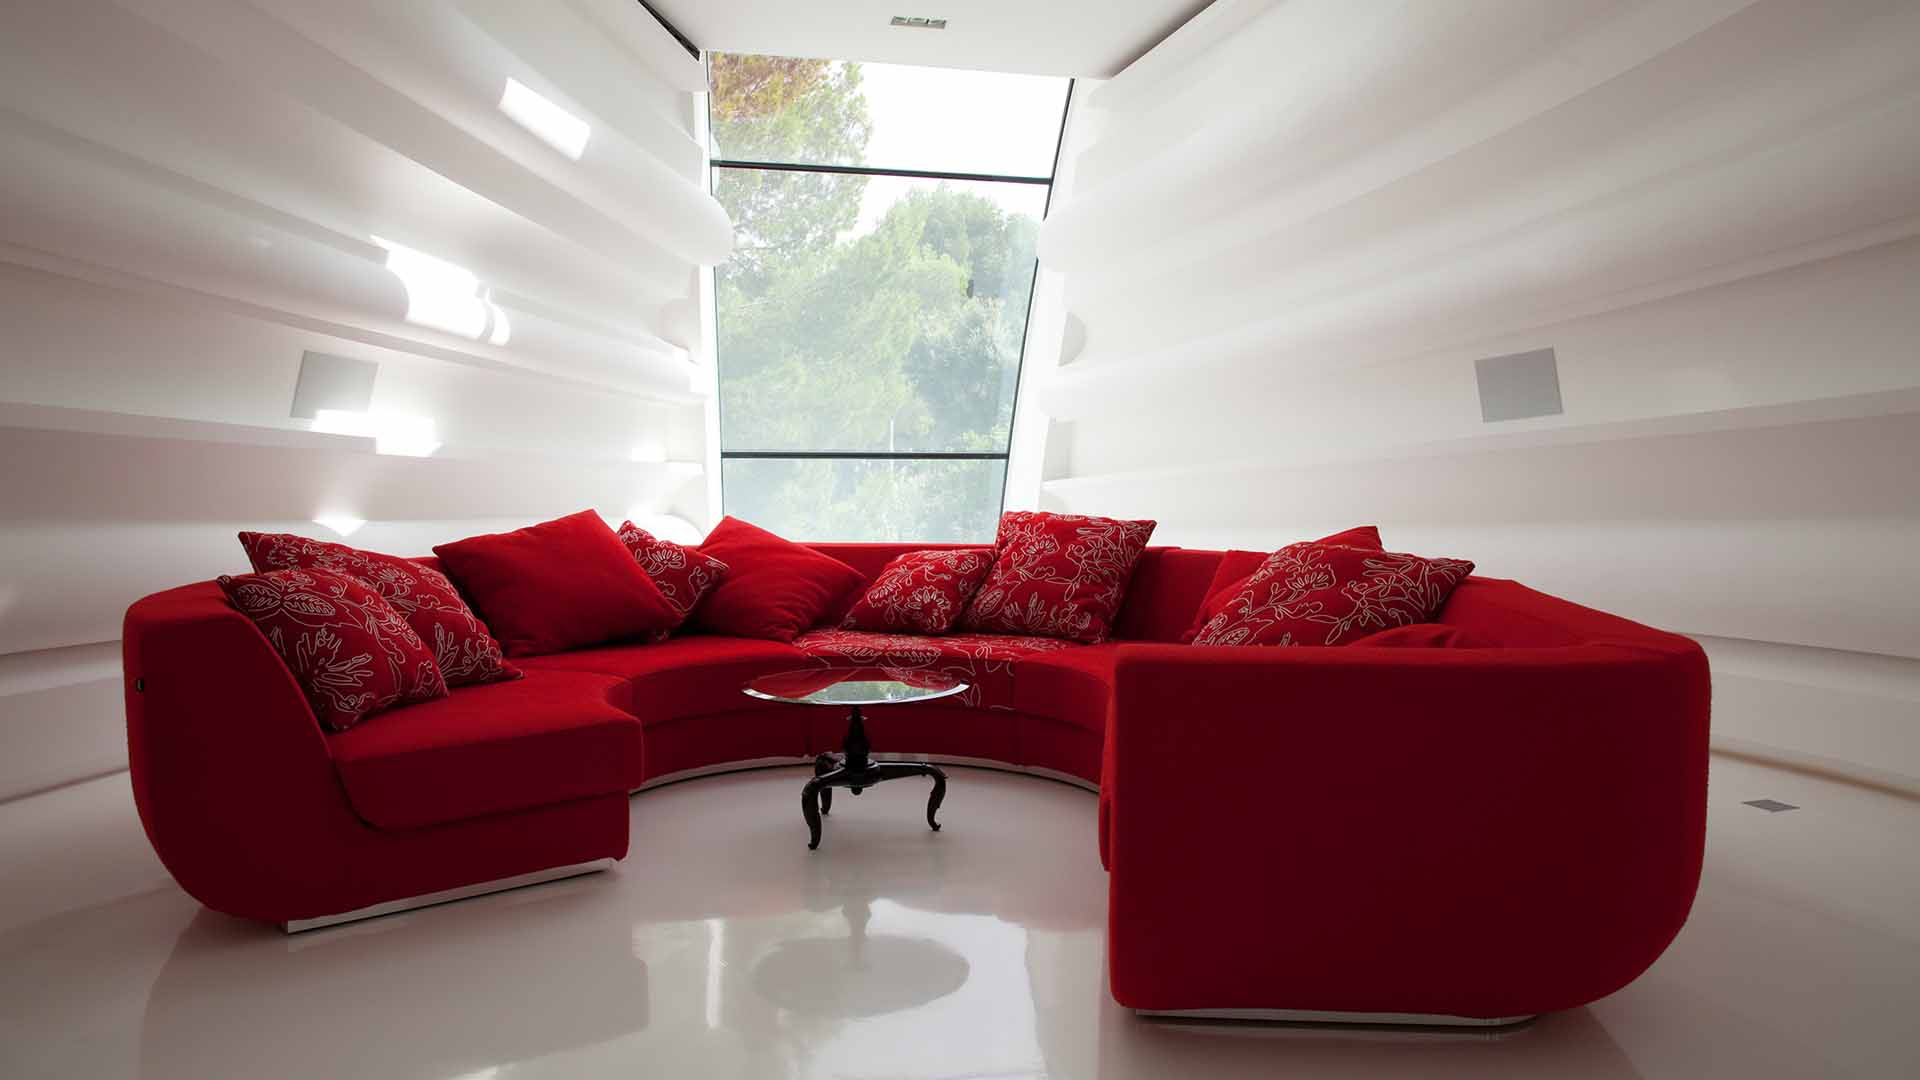 Ultra Modern Interior Design 9176 Hd Wallpapers in Architecture 1920x1080